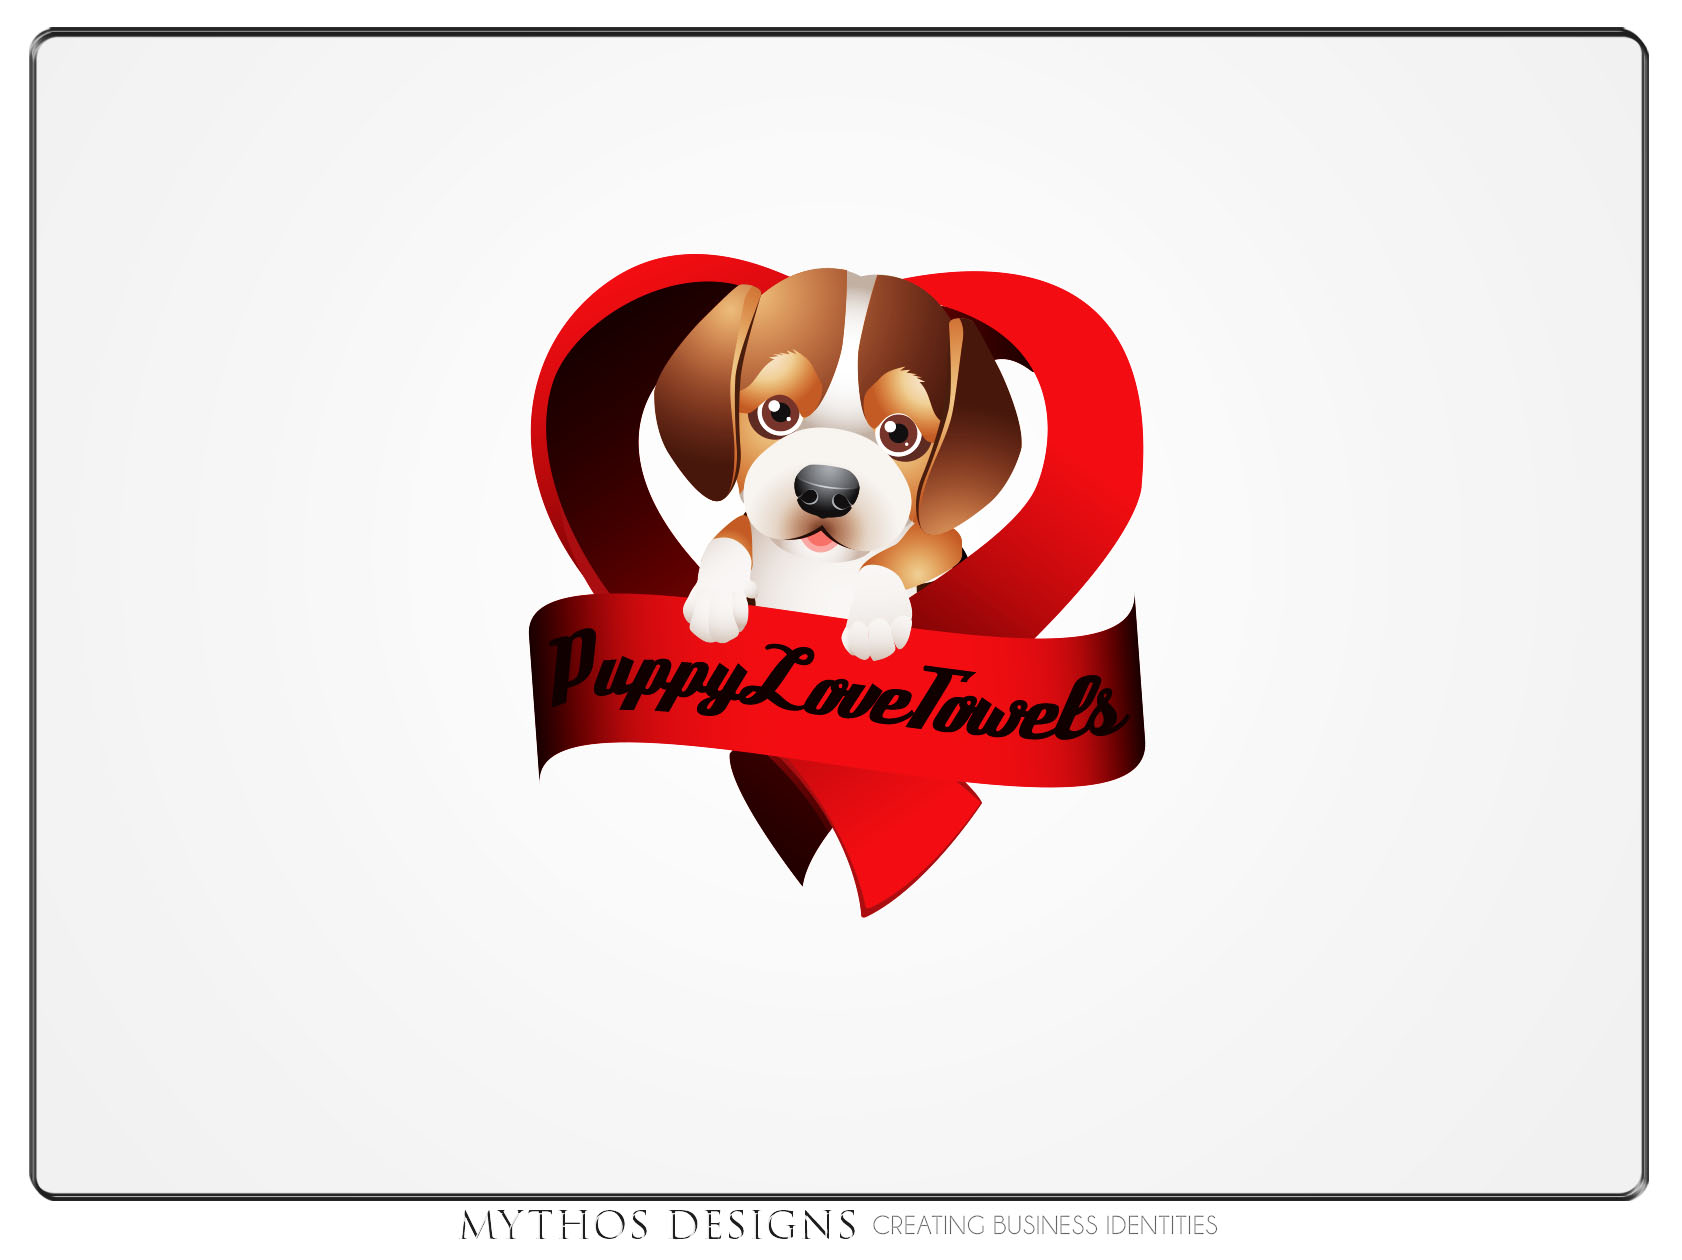 Logo Design by Mythos Designs - Entry No. 77 in the Logo Design Contest Artistic Logo Design for Puppy Love Towels.